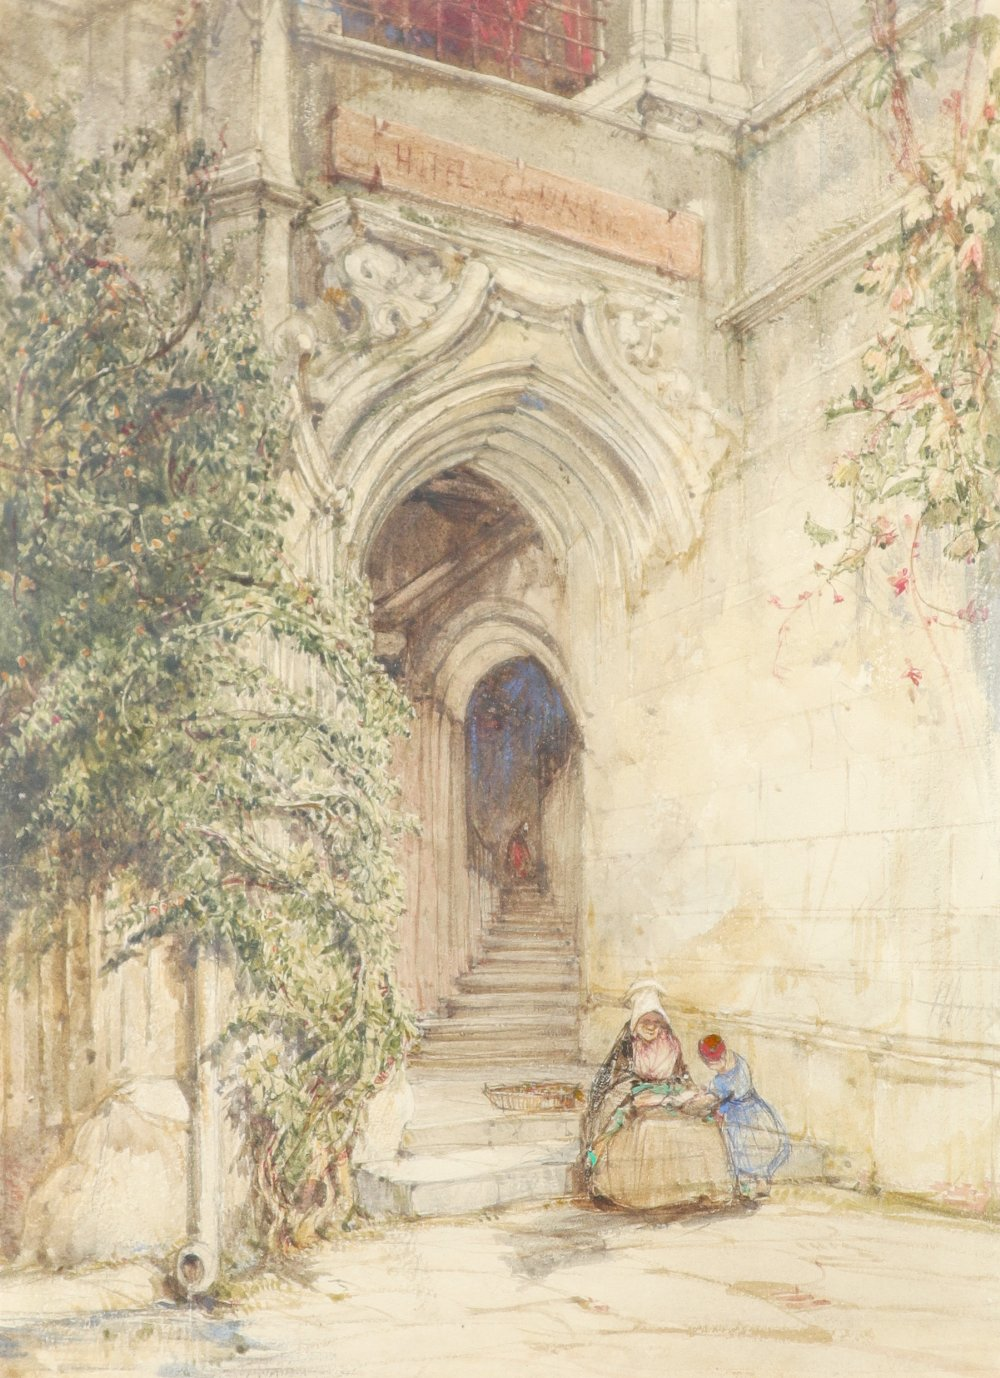 James Holland OWS (1799-1870) Hotel Cluny, Paris Signed with initials and dated JH 1835 (lower